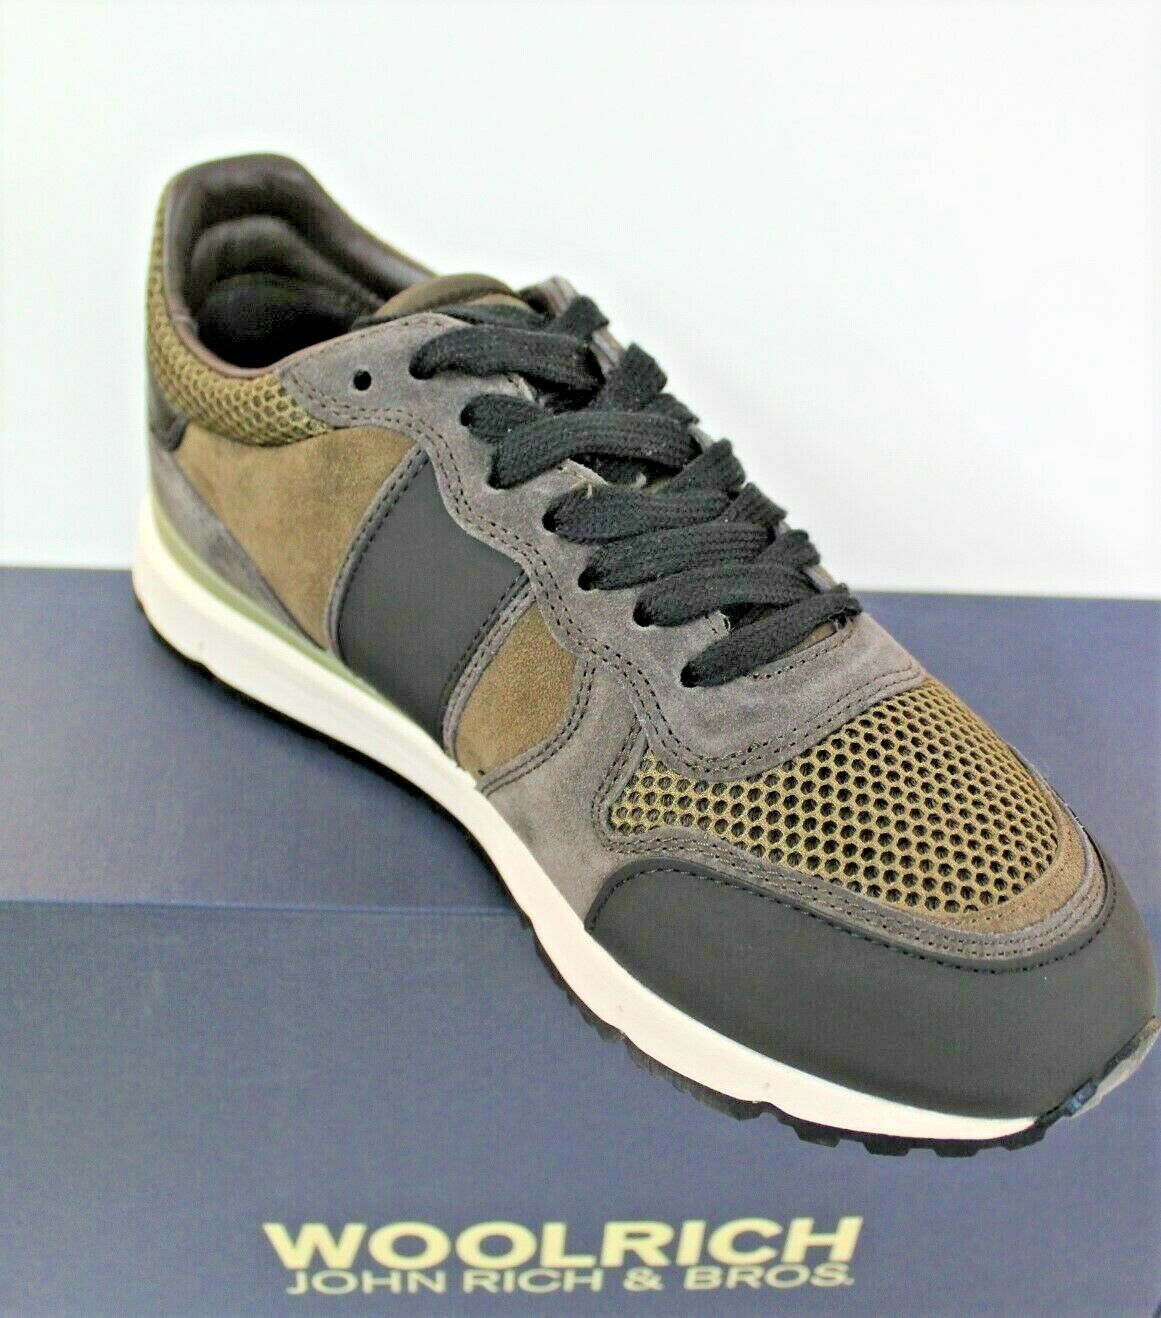 WOOLRICH FOOTWEAR SCARPONCINO Turnchaussures hommes Jogger W3000401 Suola VIBRAM  A I